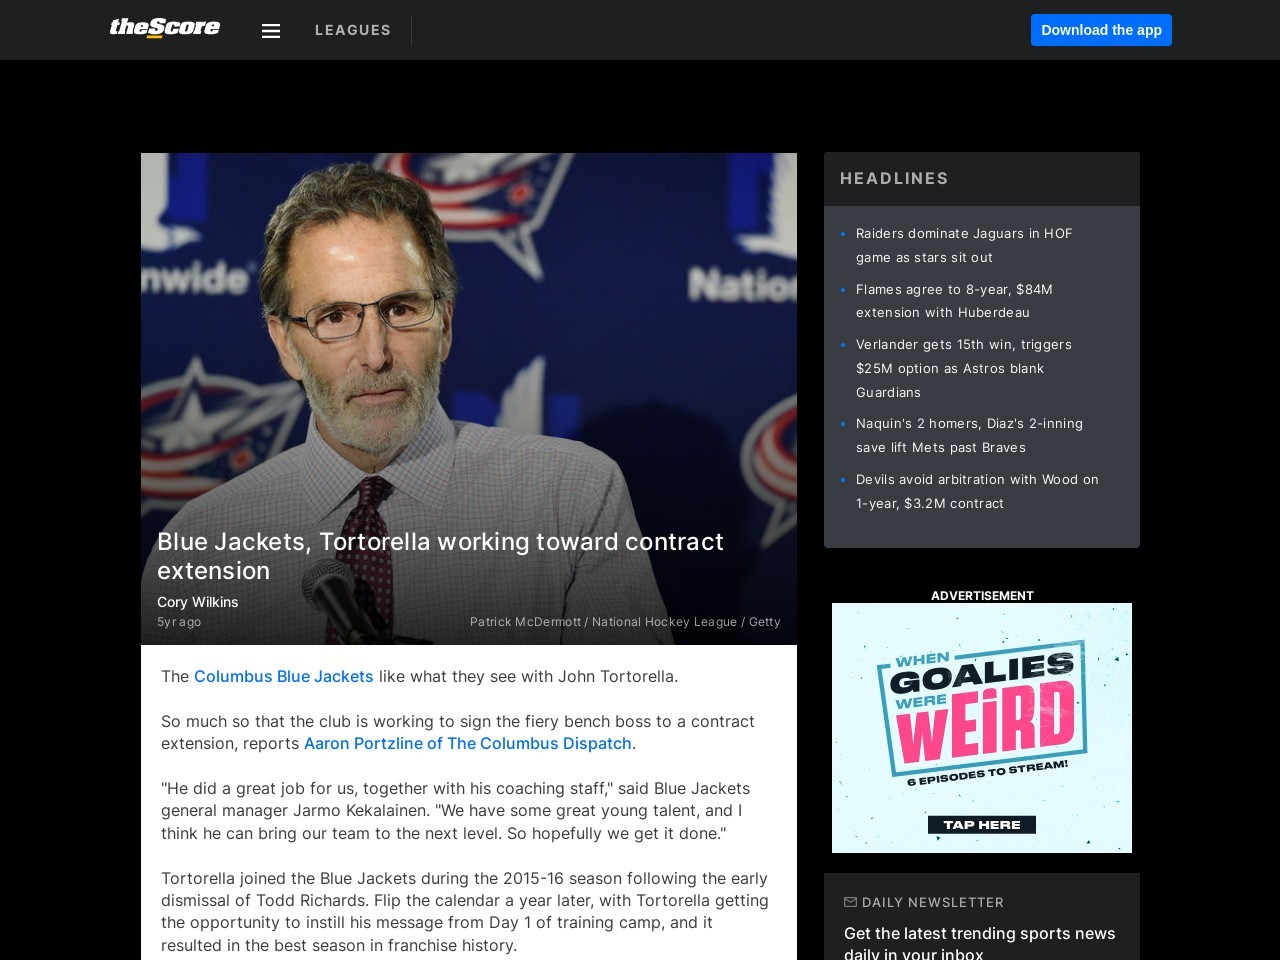 Blue Jackets, Tortorella working toward contract extension